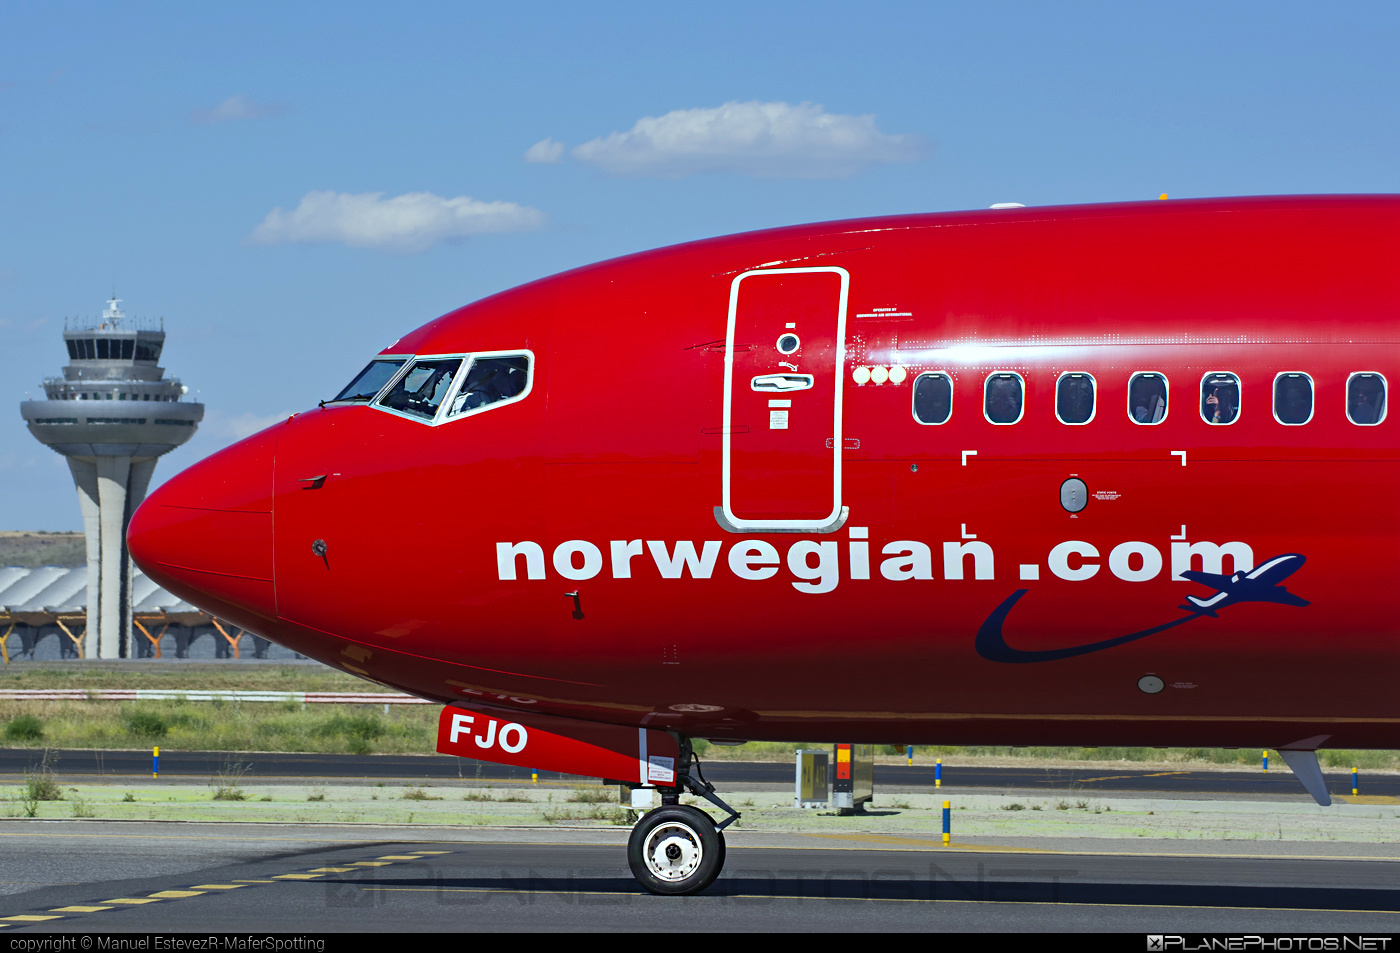 Boeing 737-800 - EI-FJO operated by Norwegian Air International #b737 #b737nextgen #b737ng #boeing #boeing737 #norwegian #norwegianair #norwegianairinternational